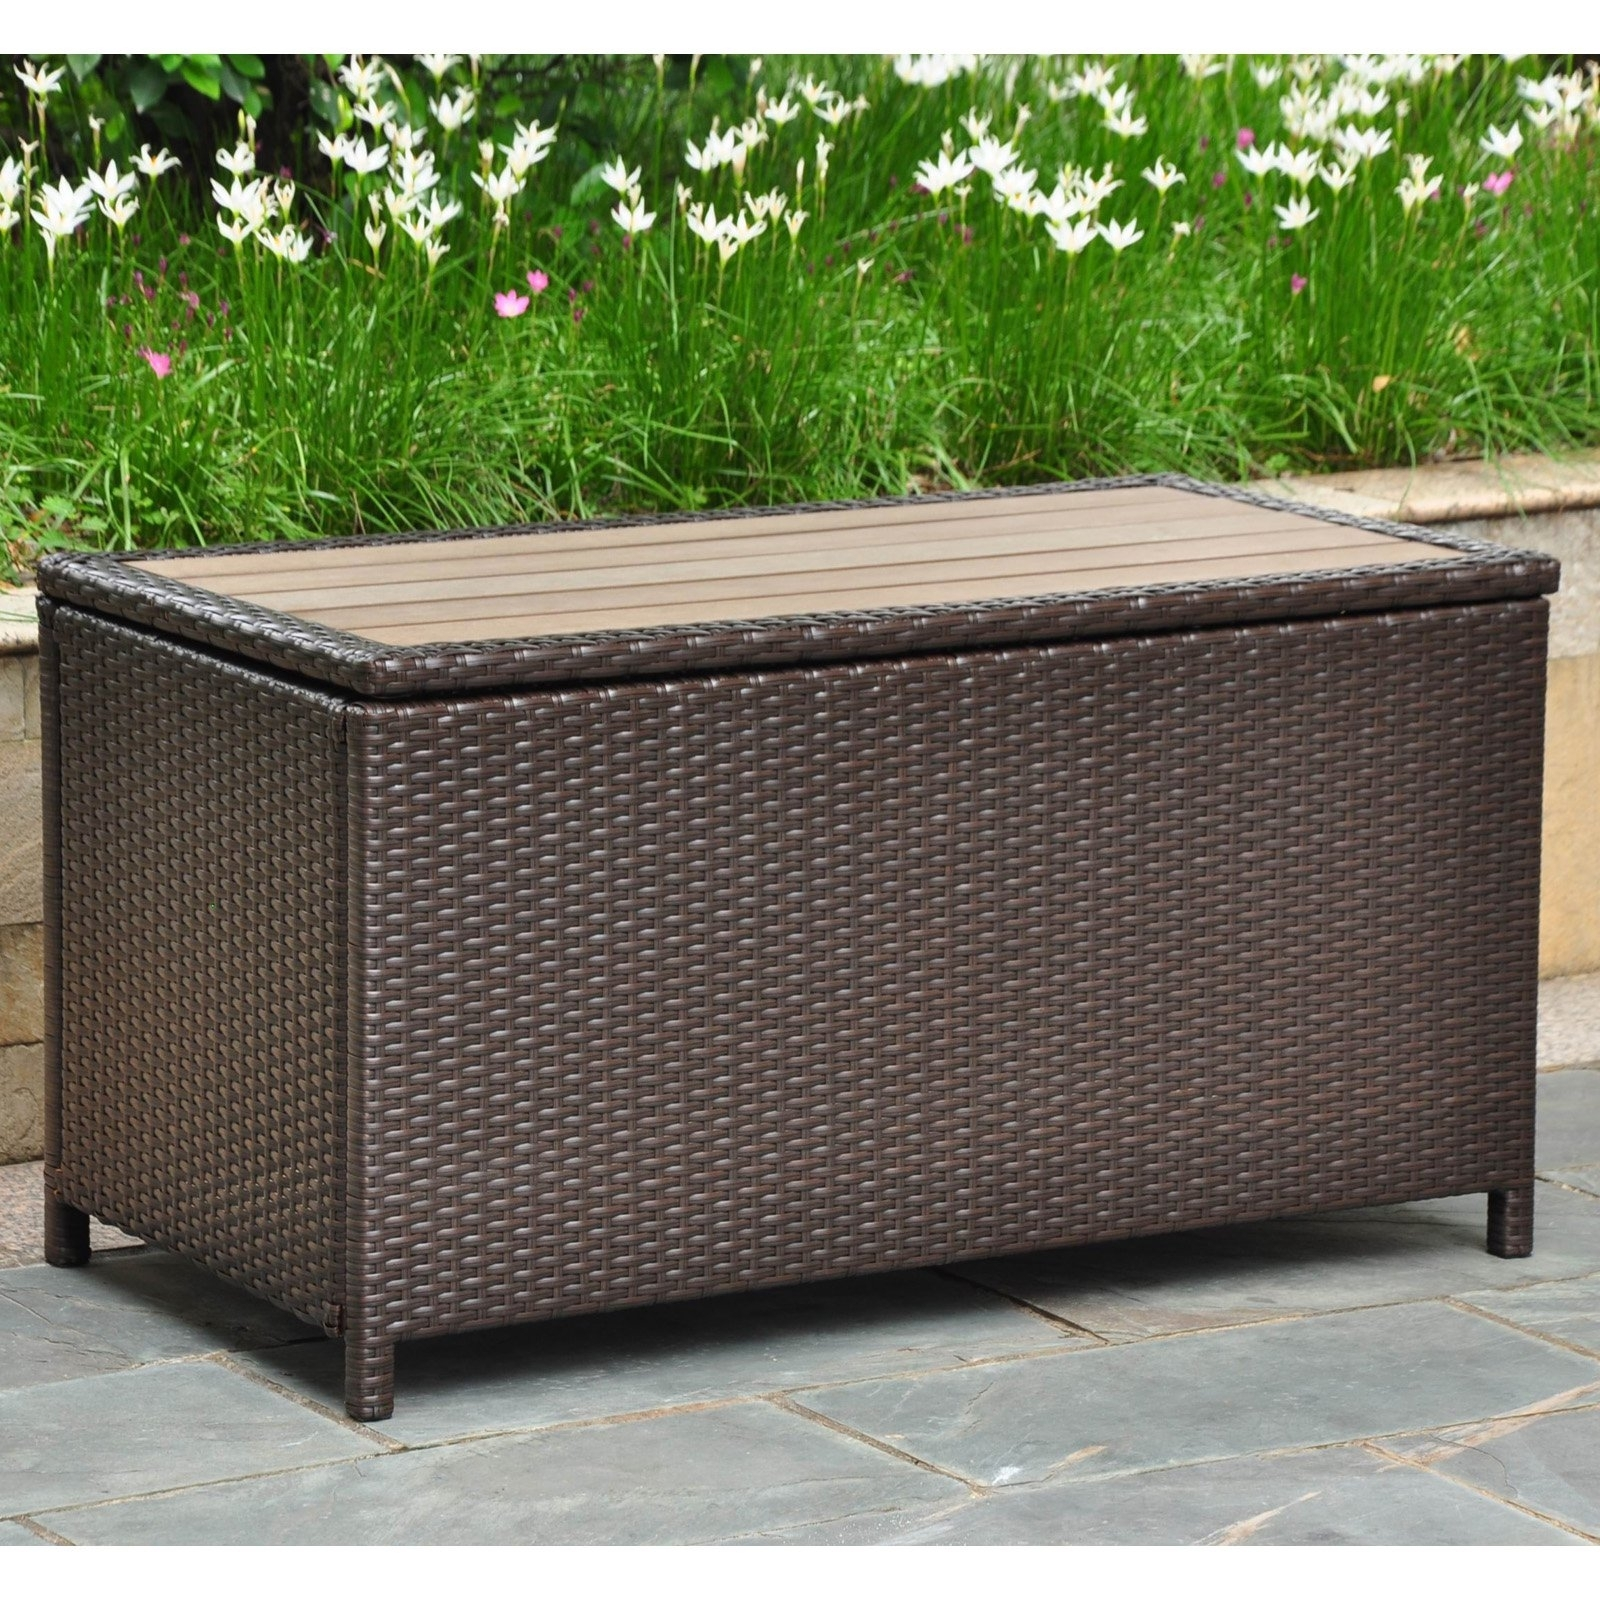 Image of: Belham Living Bayport Outdoor Storage Deck Box With Acacia Top Pertaining To Storage For Outdoor Cushions Store Storage For Outdoor Cushions